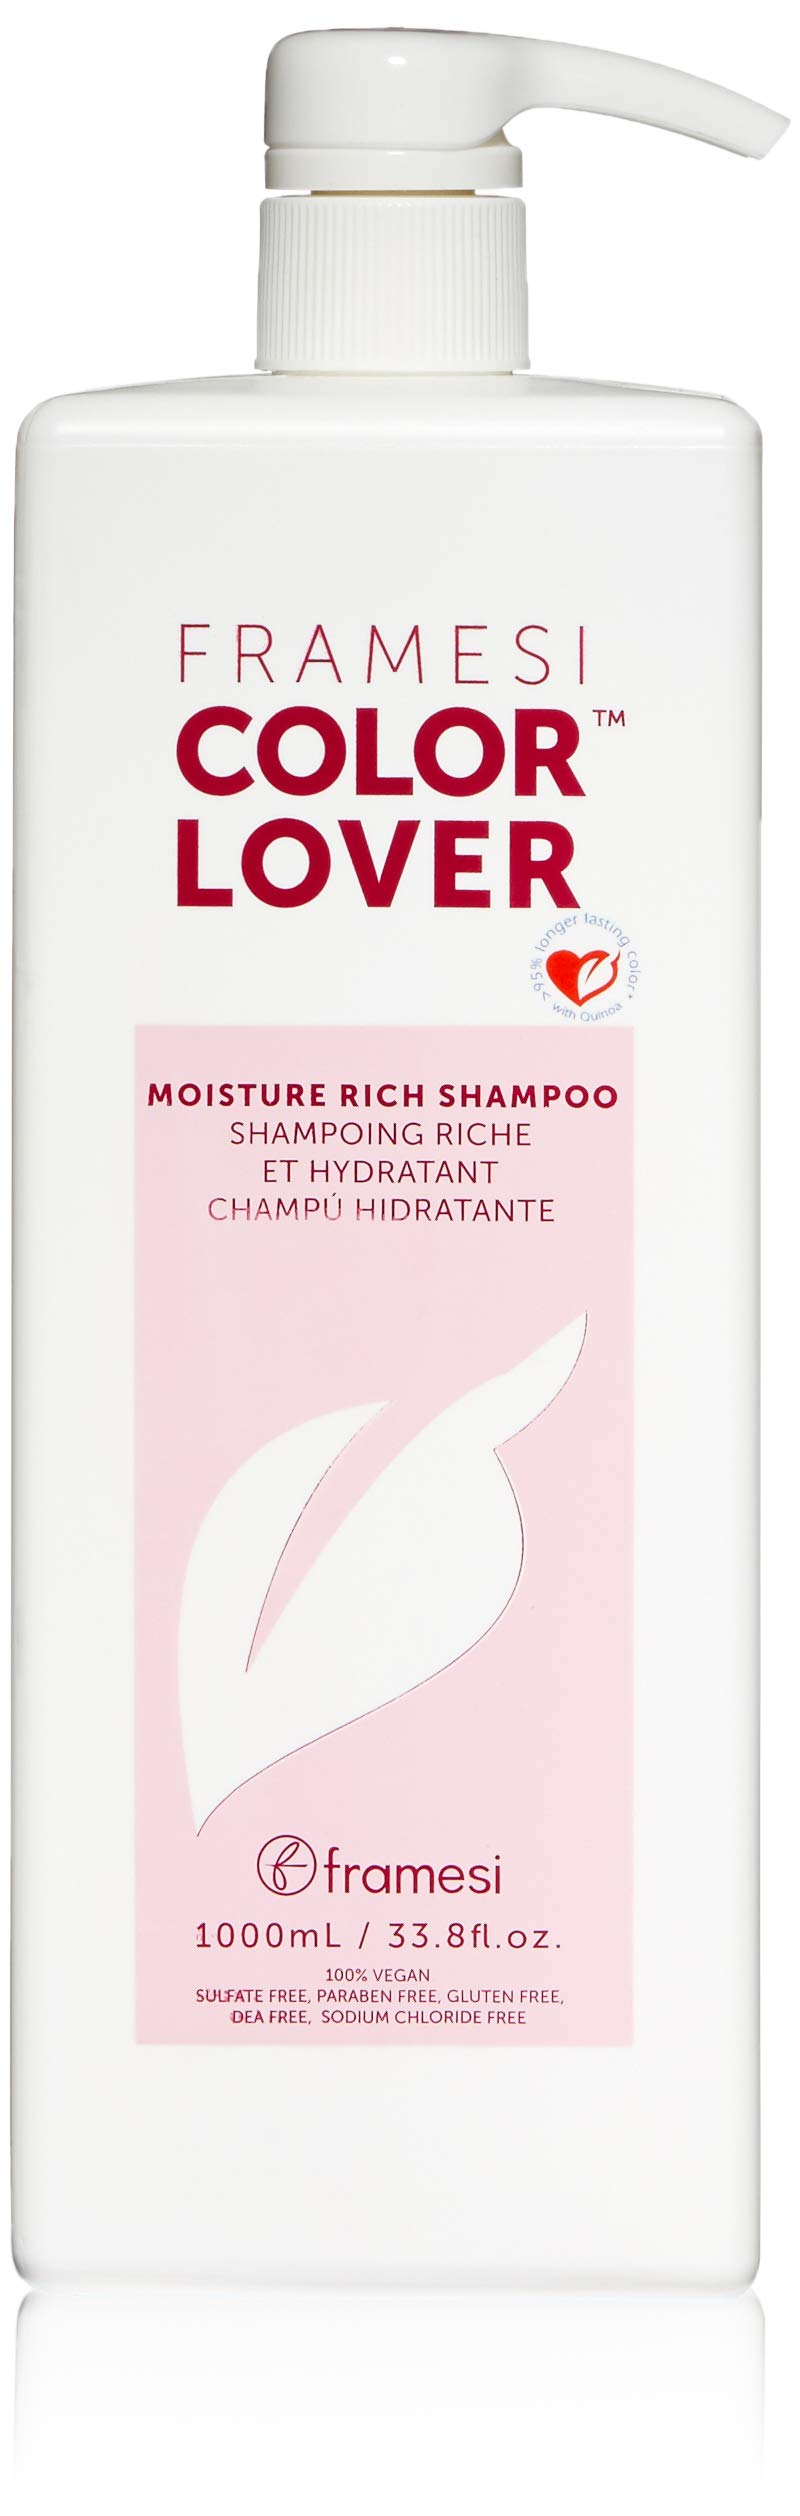 Framesi Color Lover Moisture Rich Shampoo - 33.8 Ounce, Moisturizing Shampoo, Sulfate Free and Color Safe Hydrating Shampoo, Vegan, Gluten Free, Cruelty Free by framesi